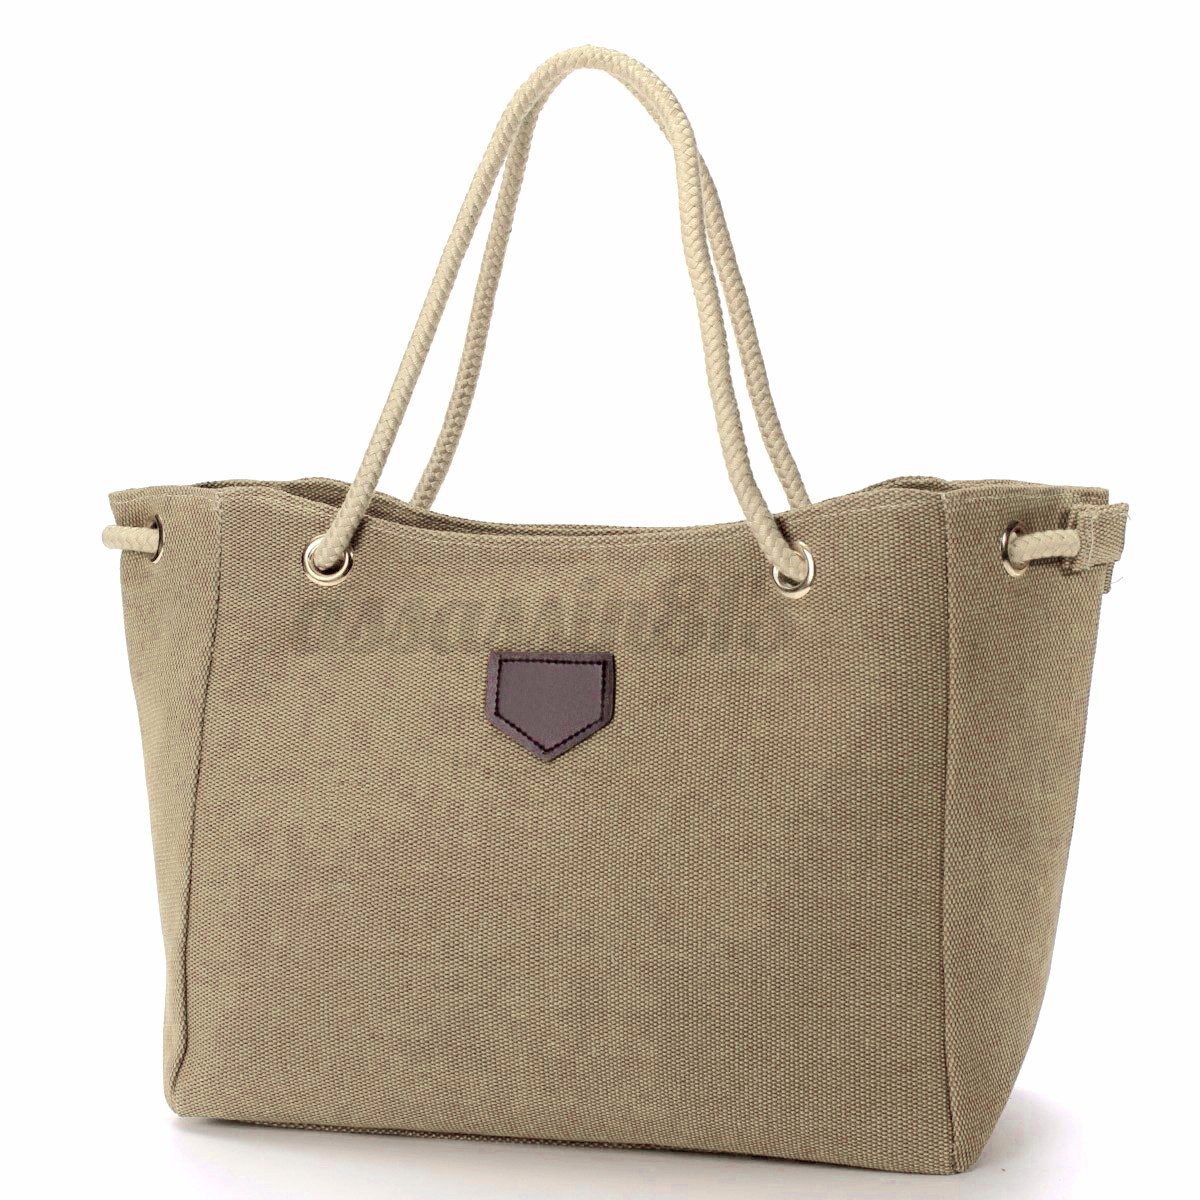 b0ba3377cfe491 Canvas Shoulder Tote Bags For Women | Stanford Center for ...